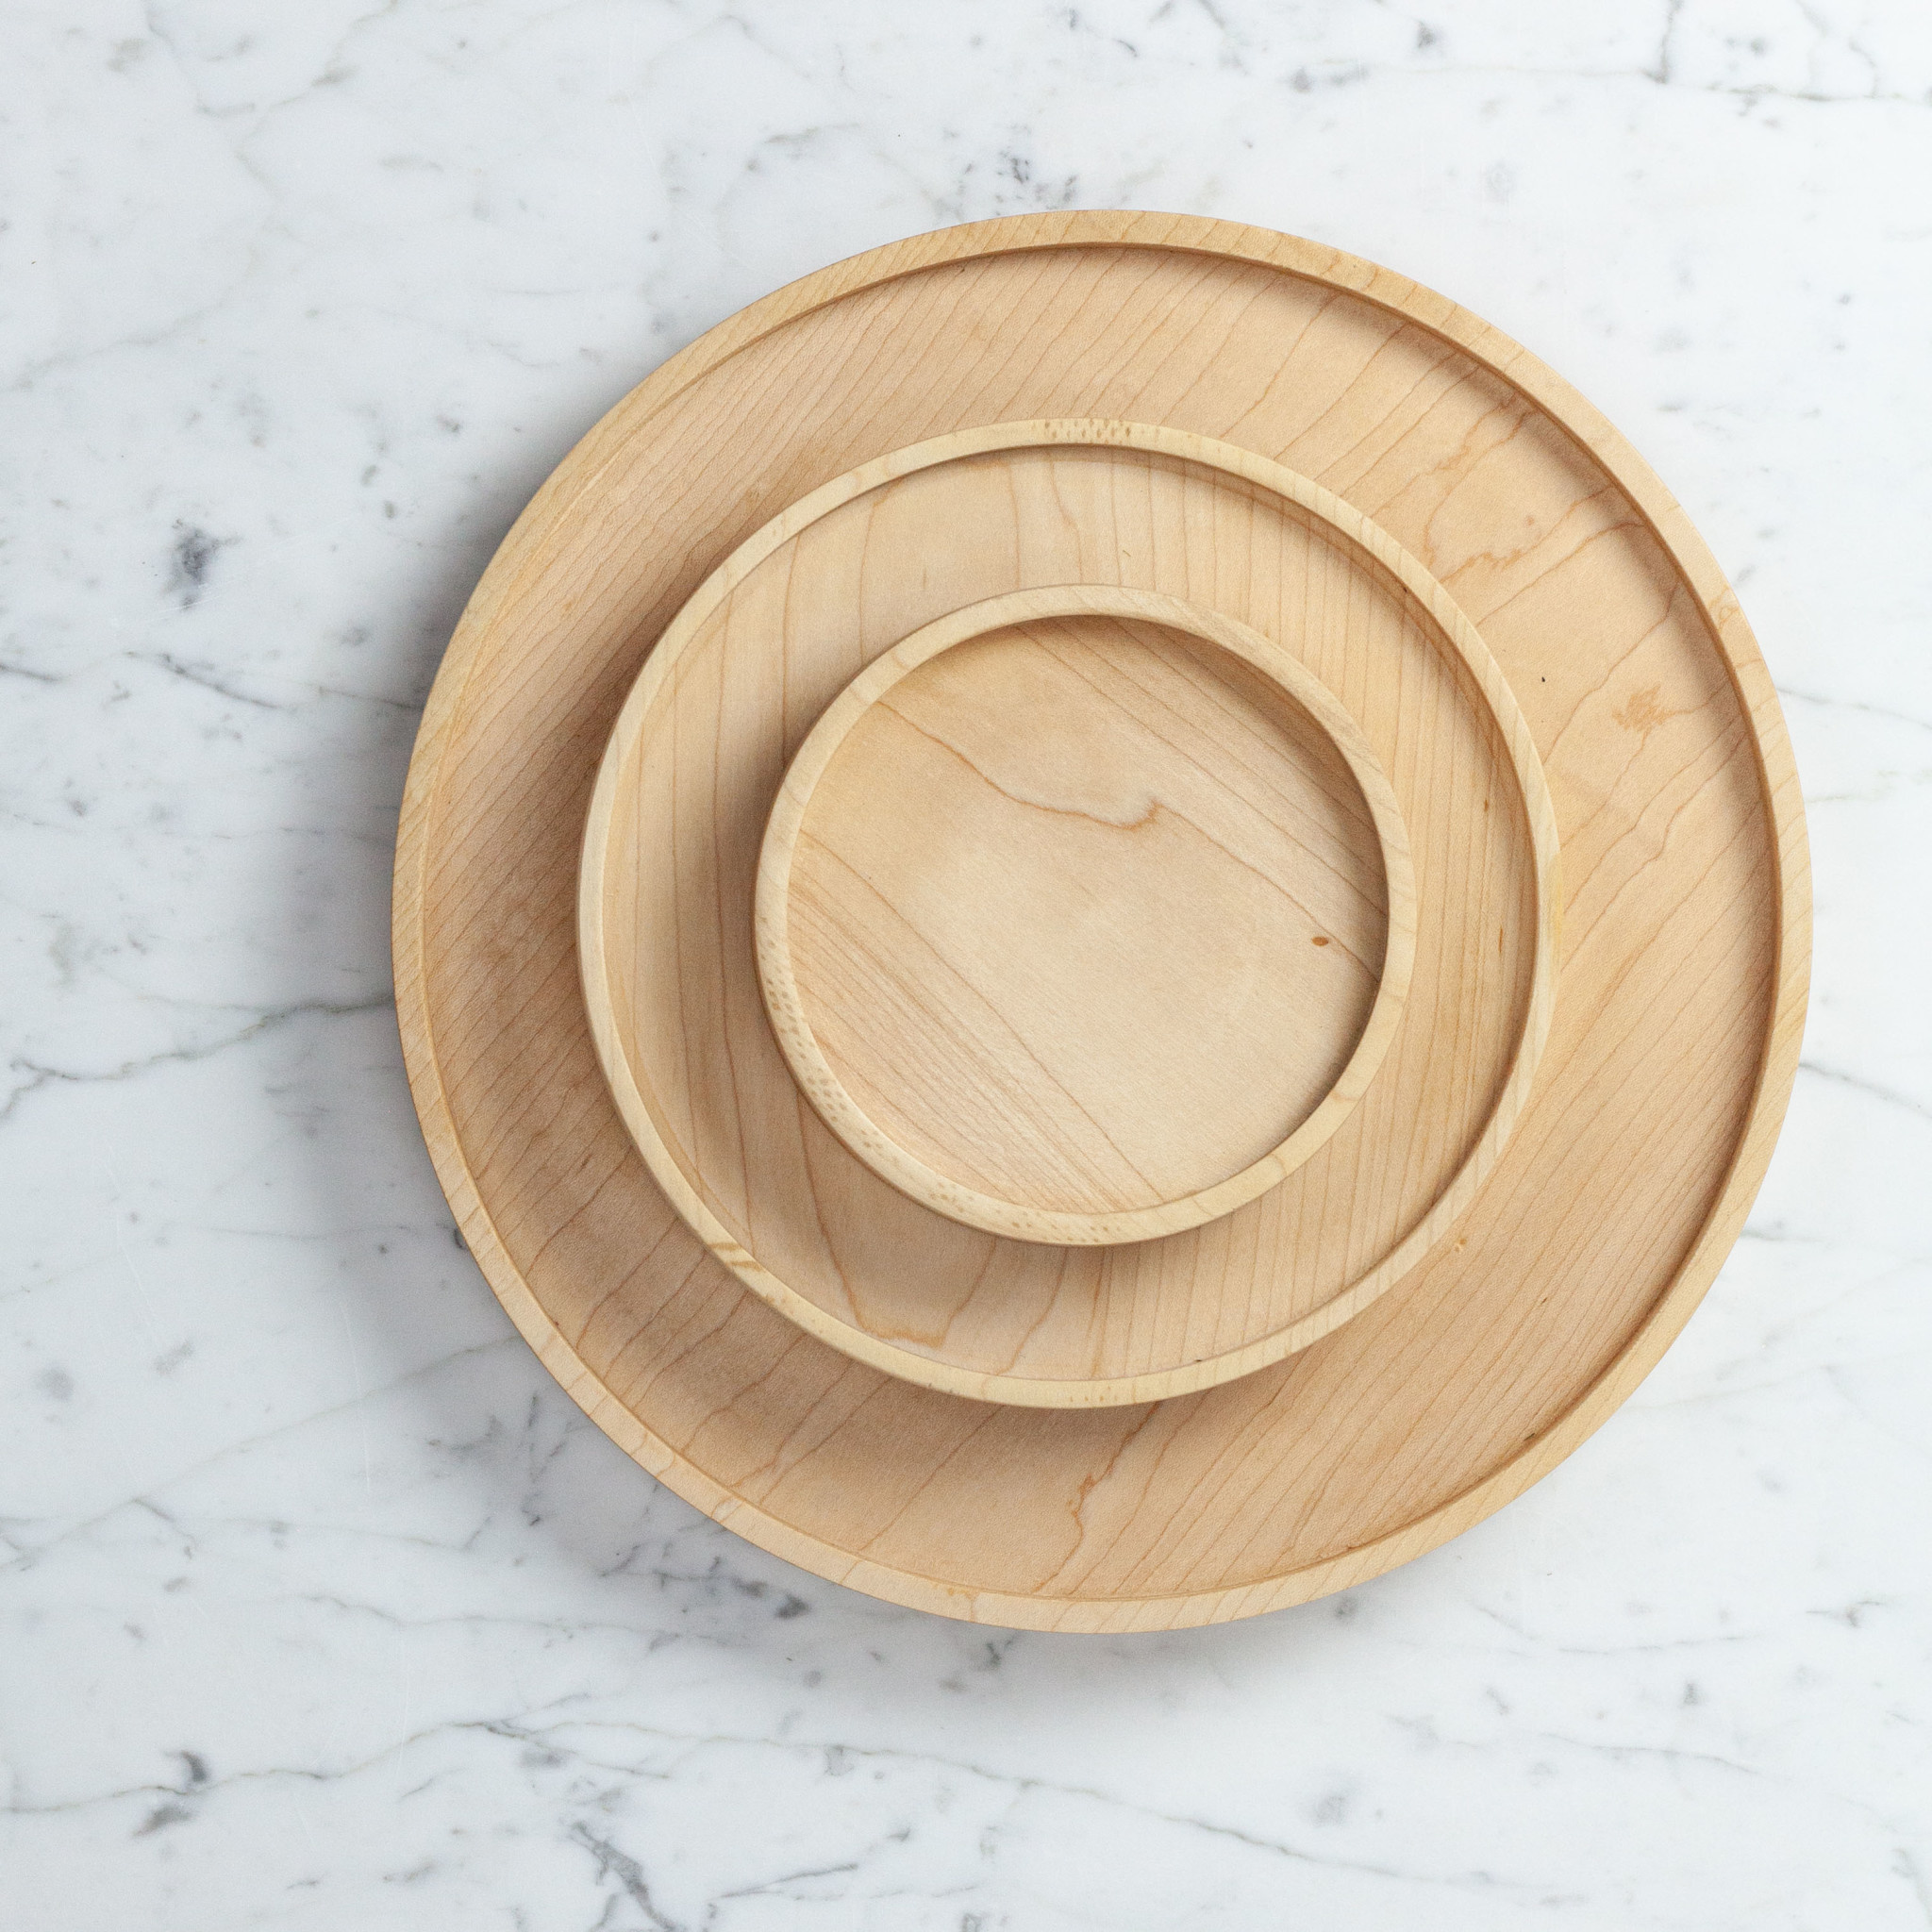 """Elise Mclauchlan Elise Mclauchlan Hand Turned Maple Plate or Tray - Small - 5"""""""